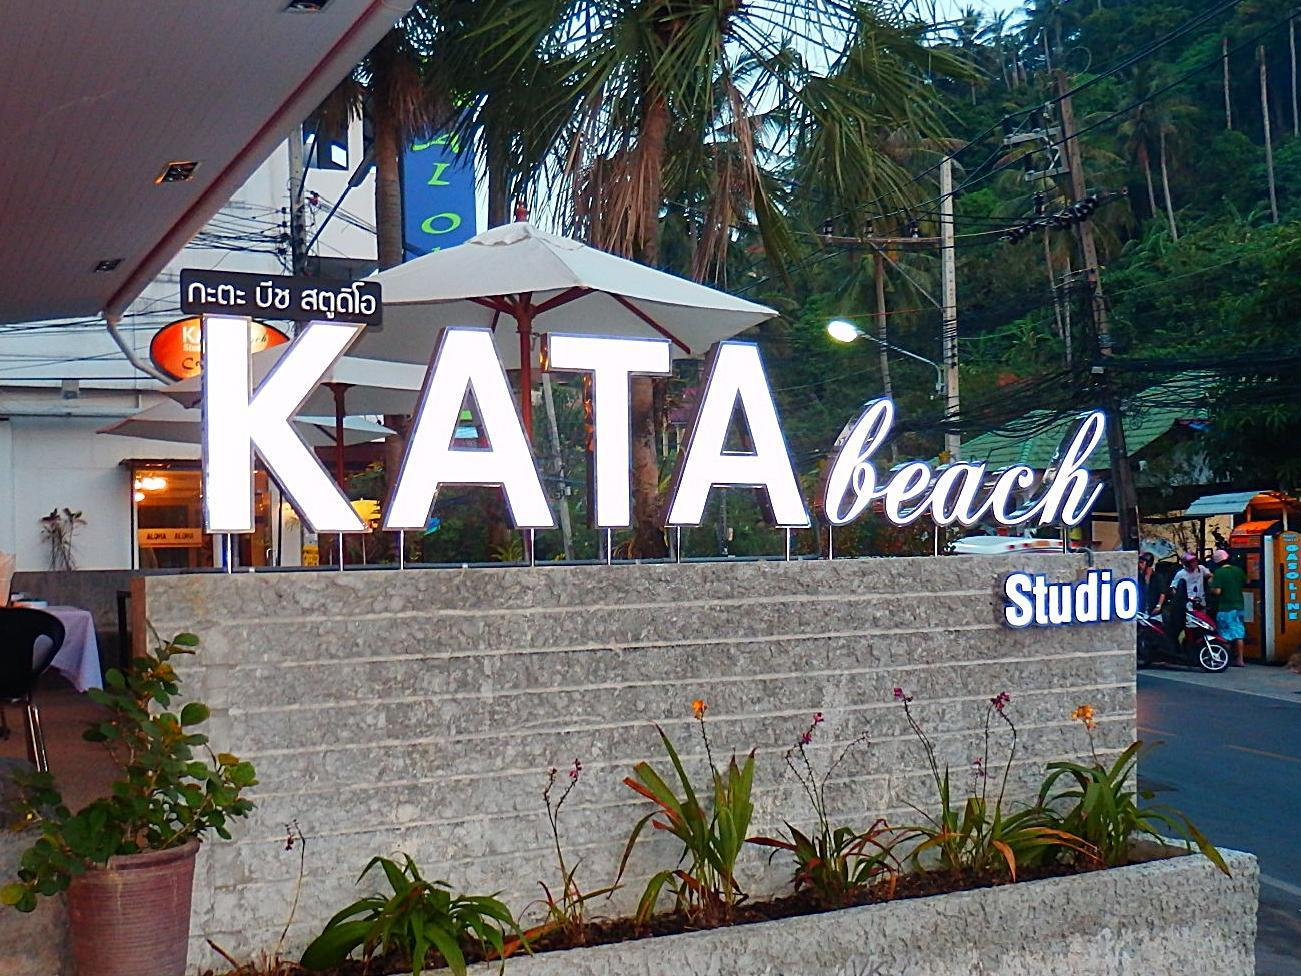 Kata Beach Studio 푸켓